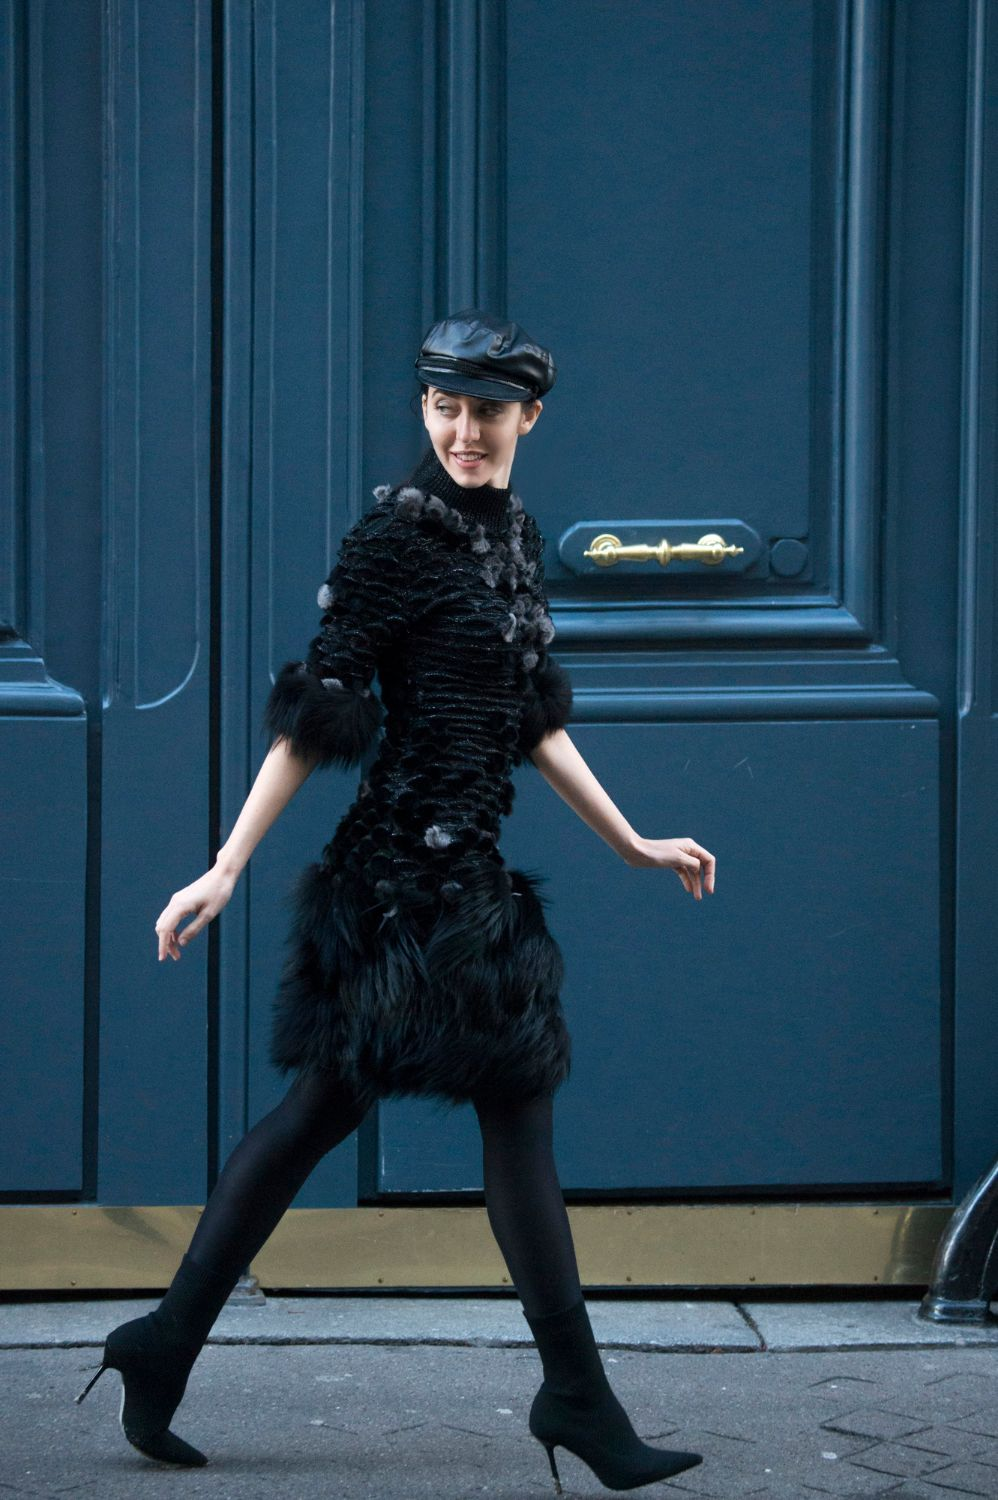 Lady Fur running to Dior show with the fur dress